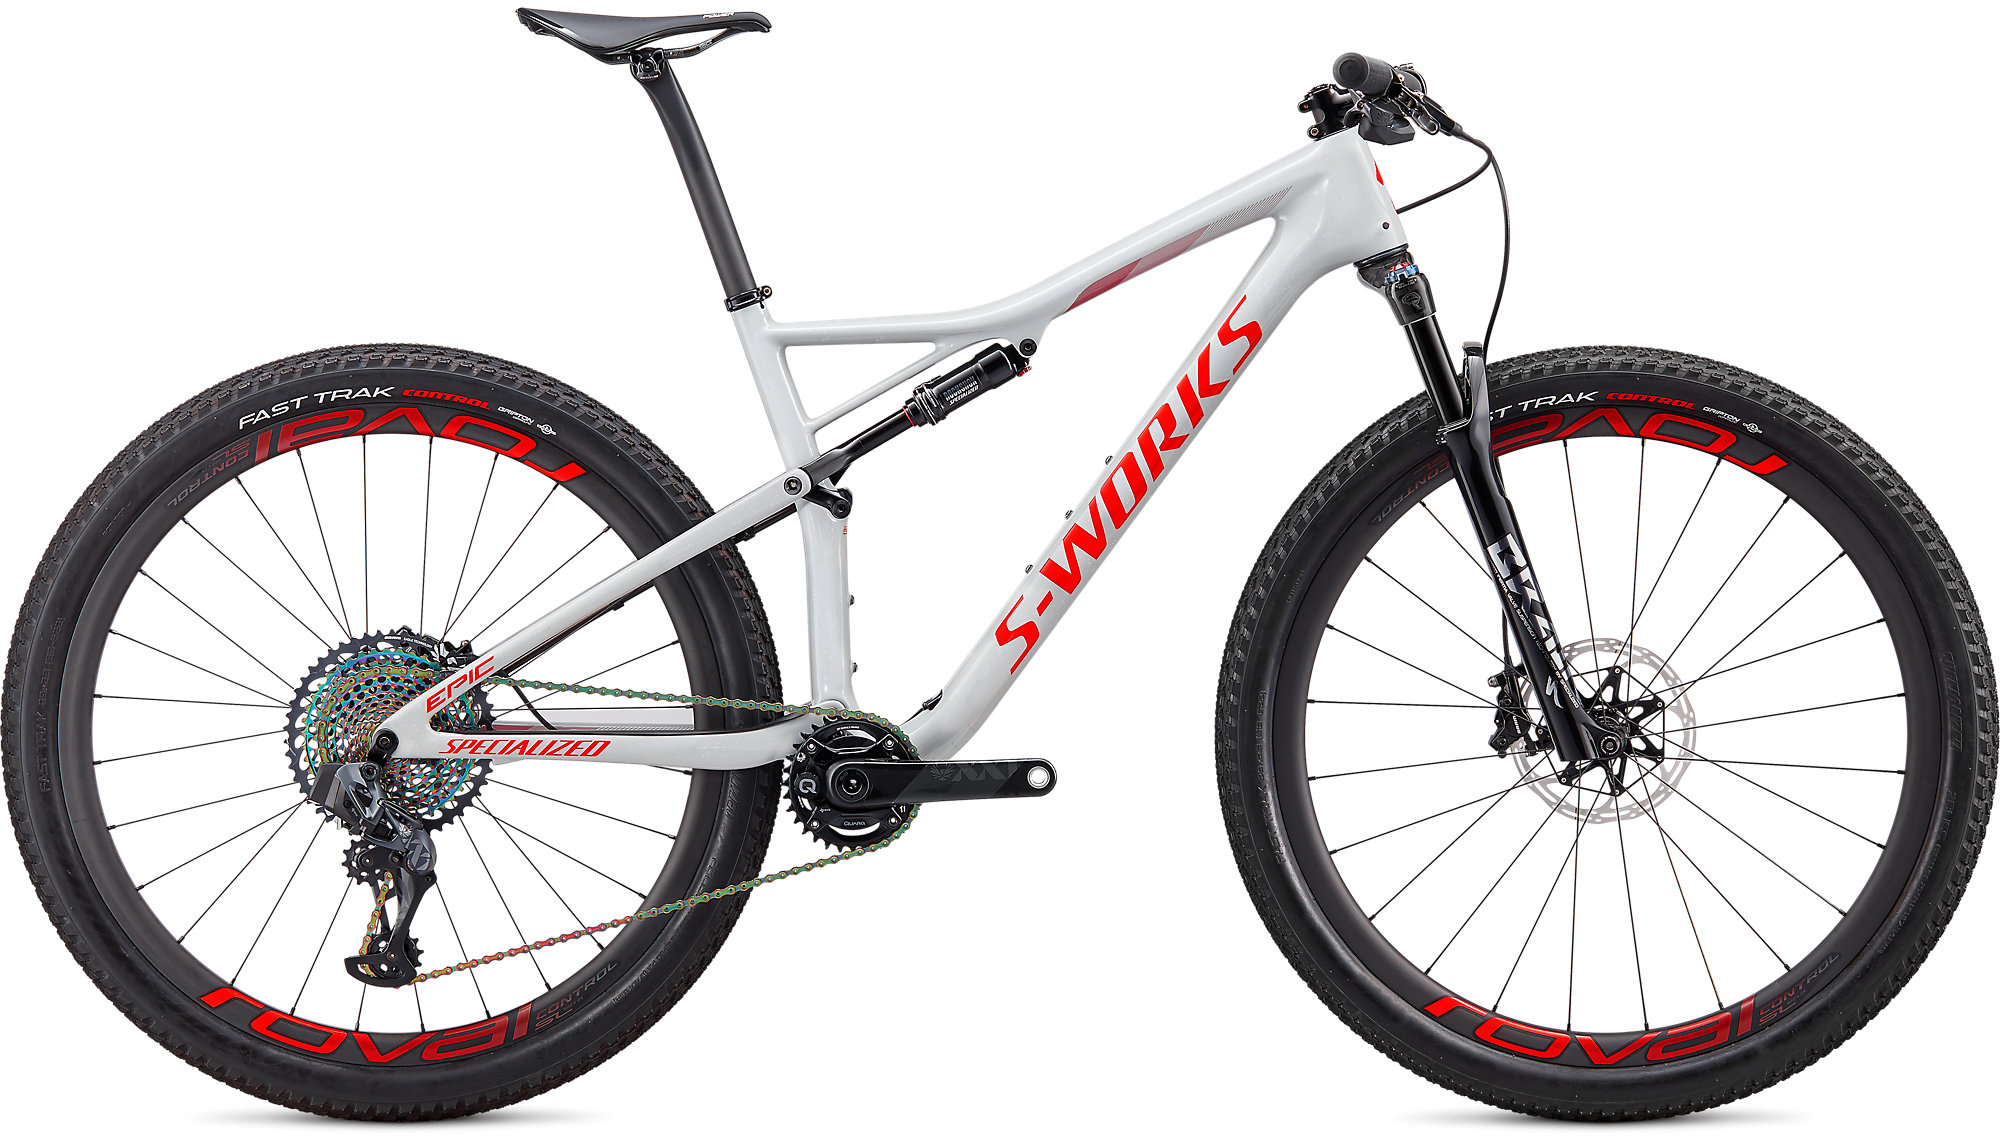 2020 Specialized S Works Epic Axs Specialized Concept Store